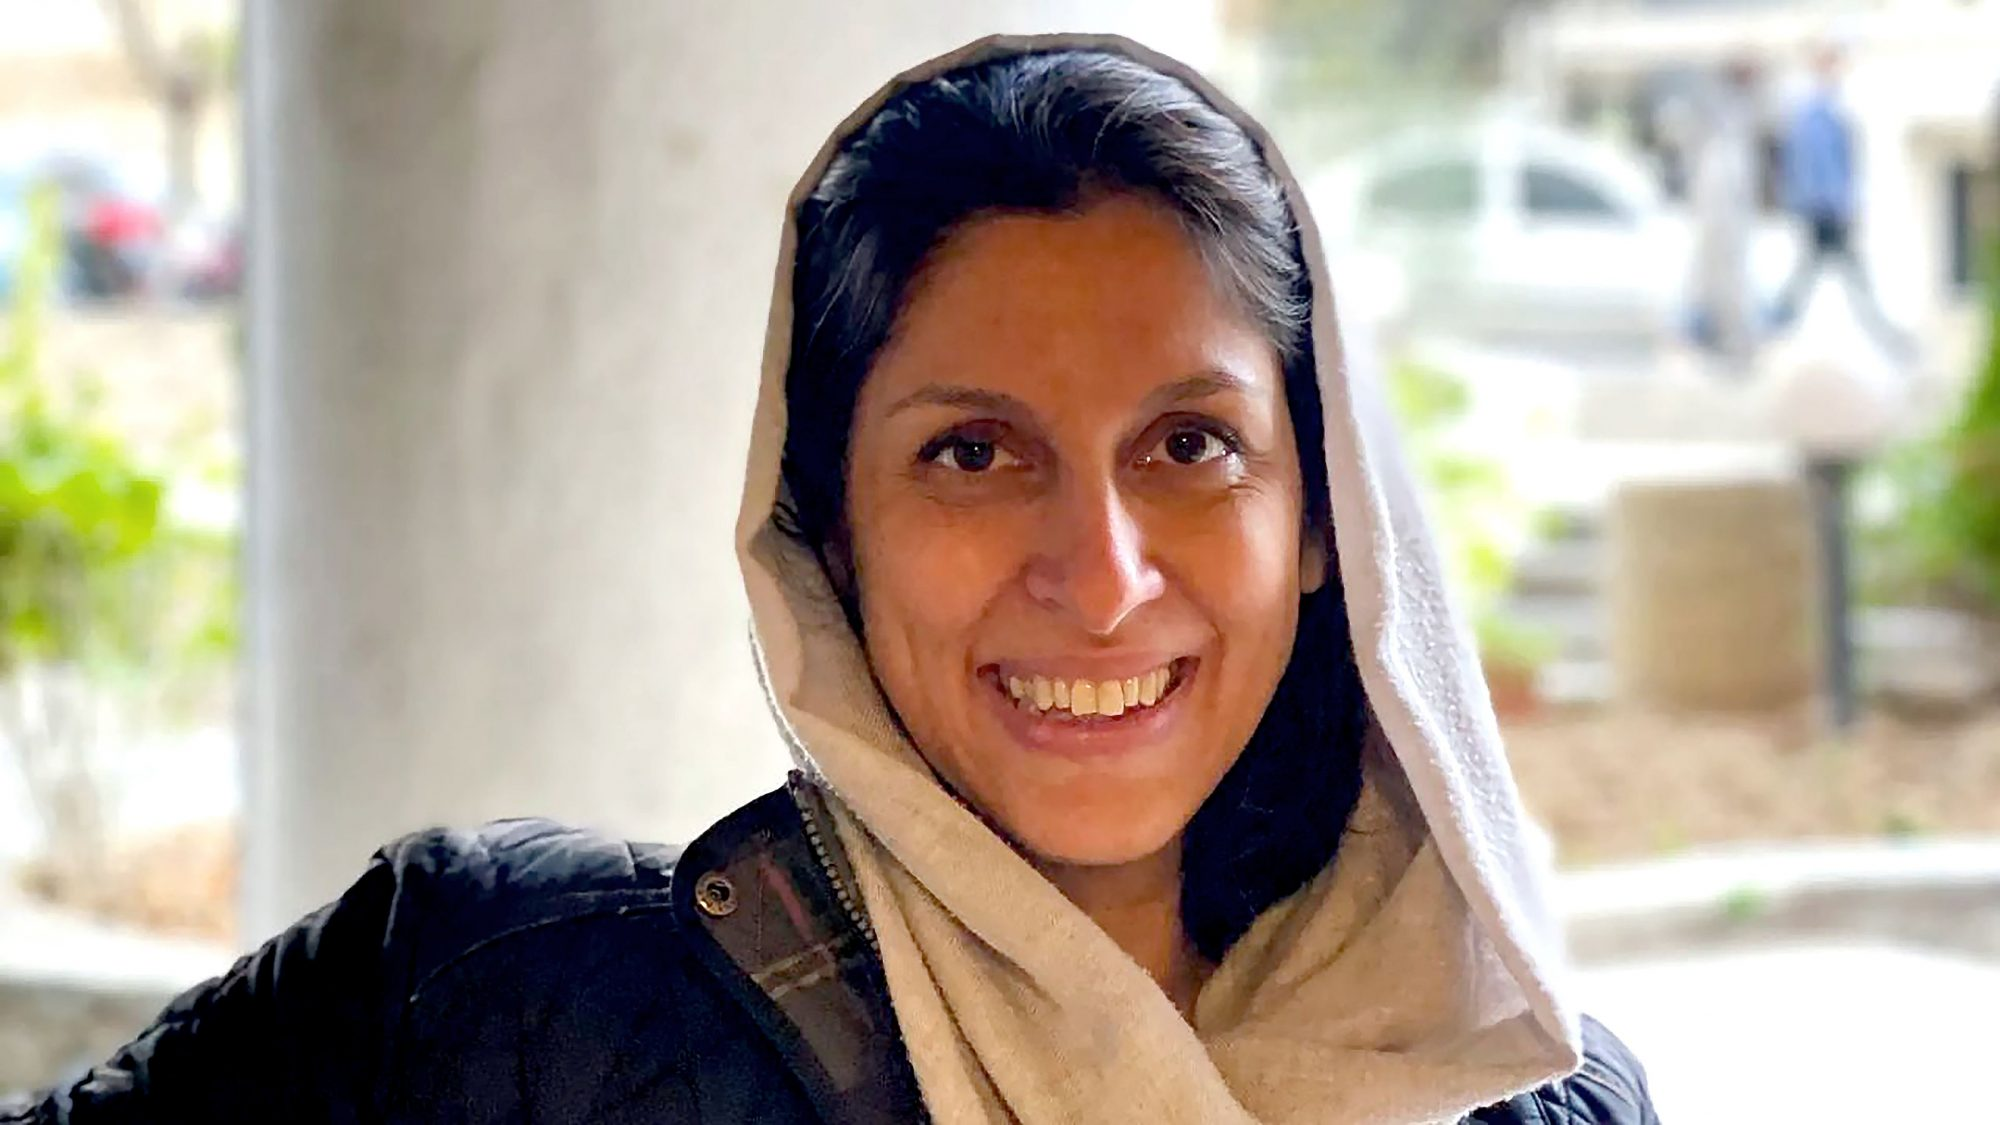 Speculation Nazanin release could be linked to UK debt to Iran - channel 4